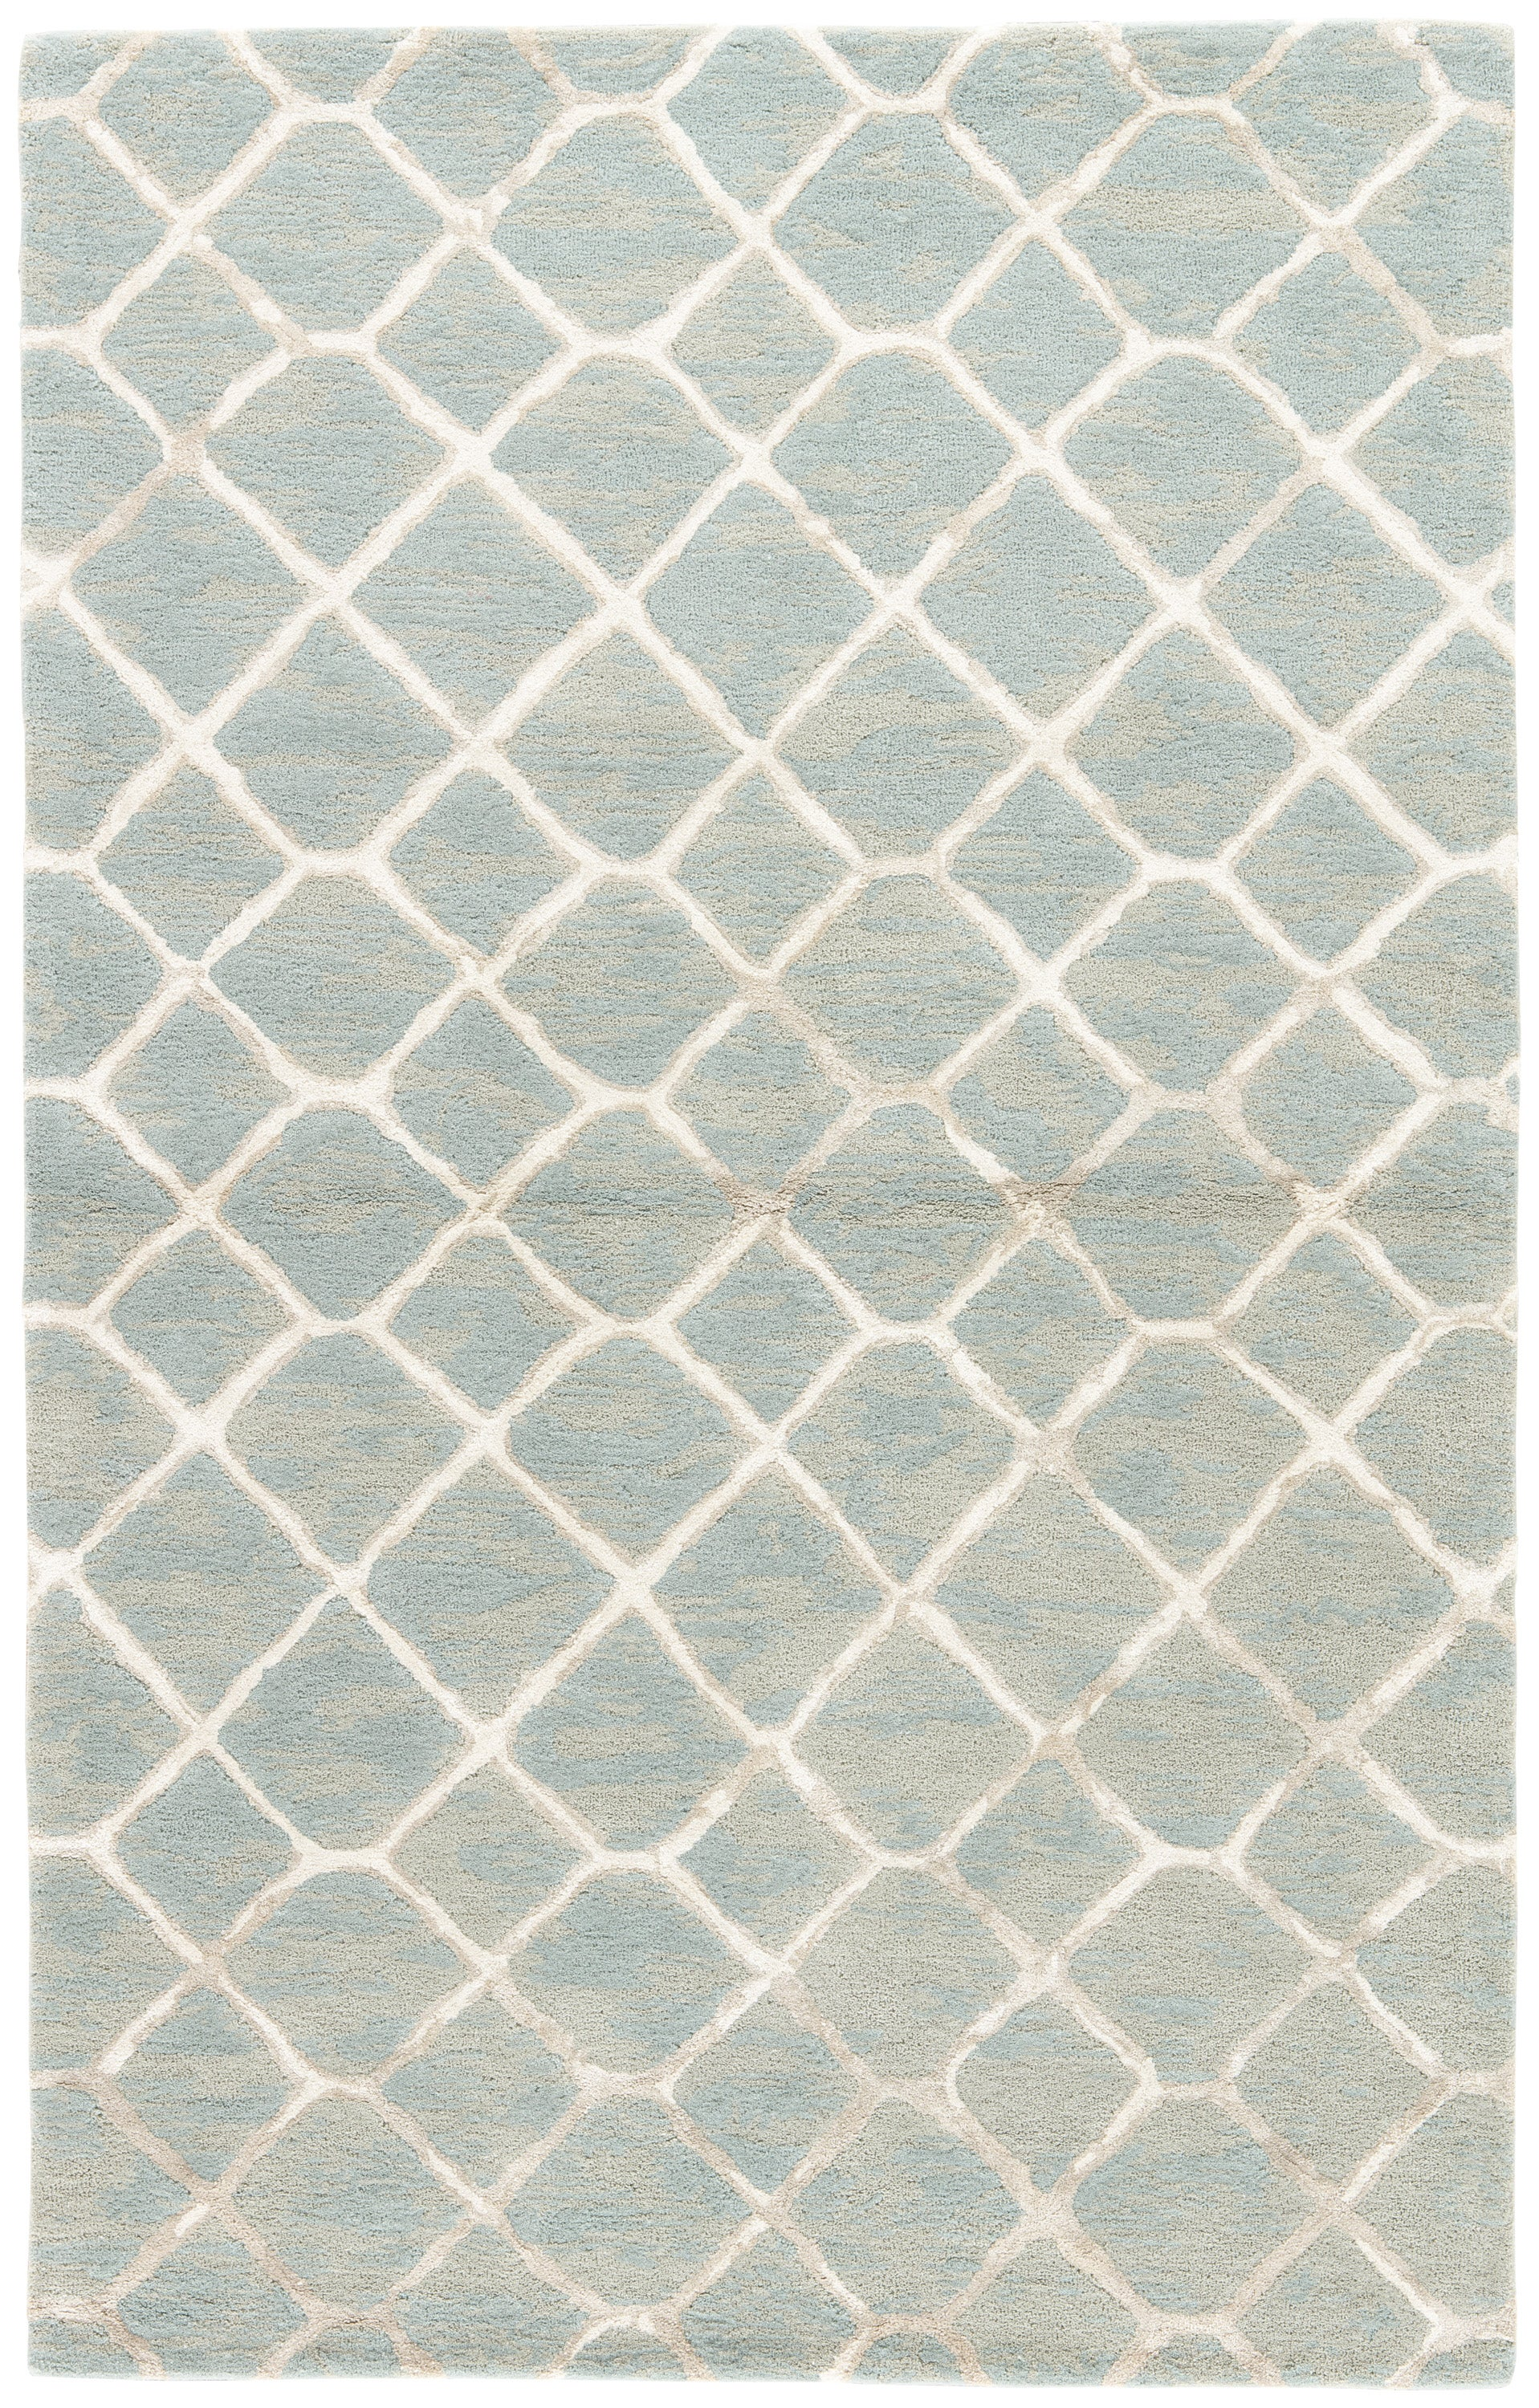 Rectangle 2x3 Blue Trellis Hand Tufted Blends Contemporary recommended for Bedroom, Bathroom, Dining Room, Office, Hallway, Living Room